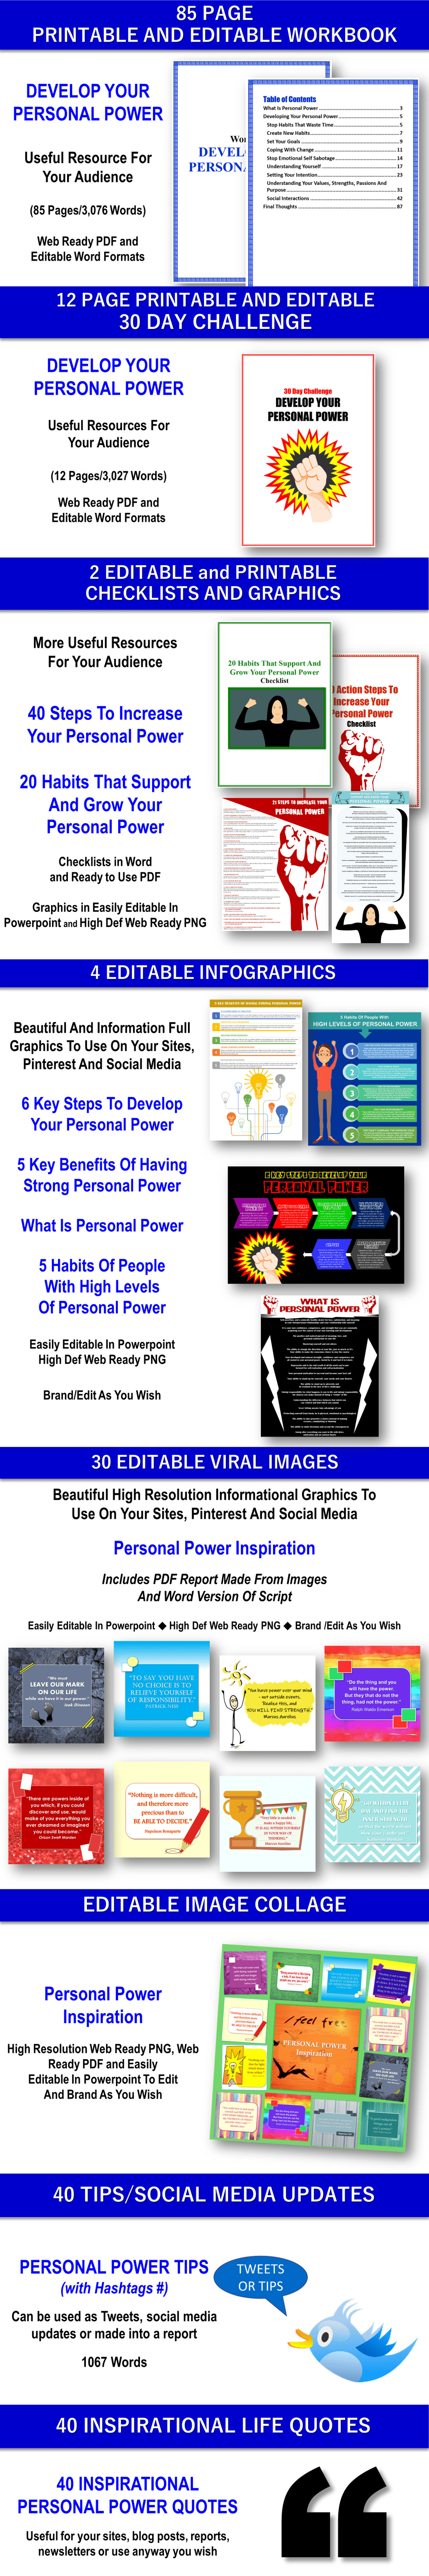 Personal Power Personal Development PLR